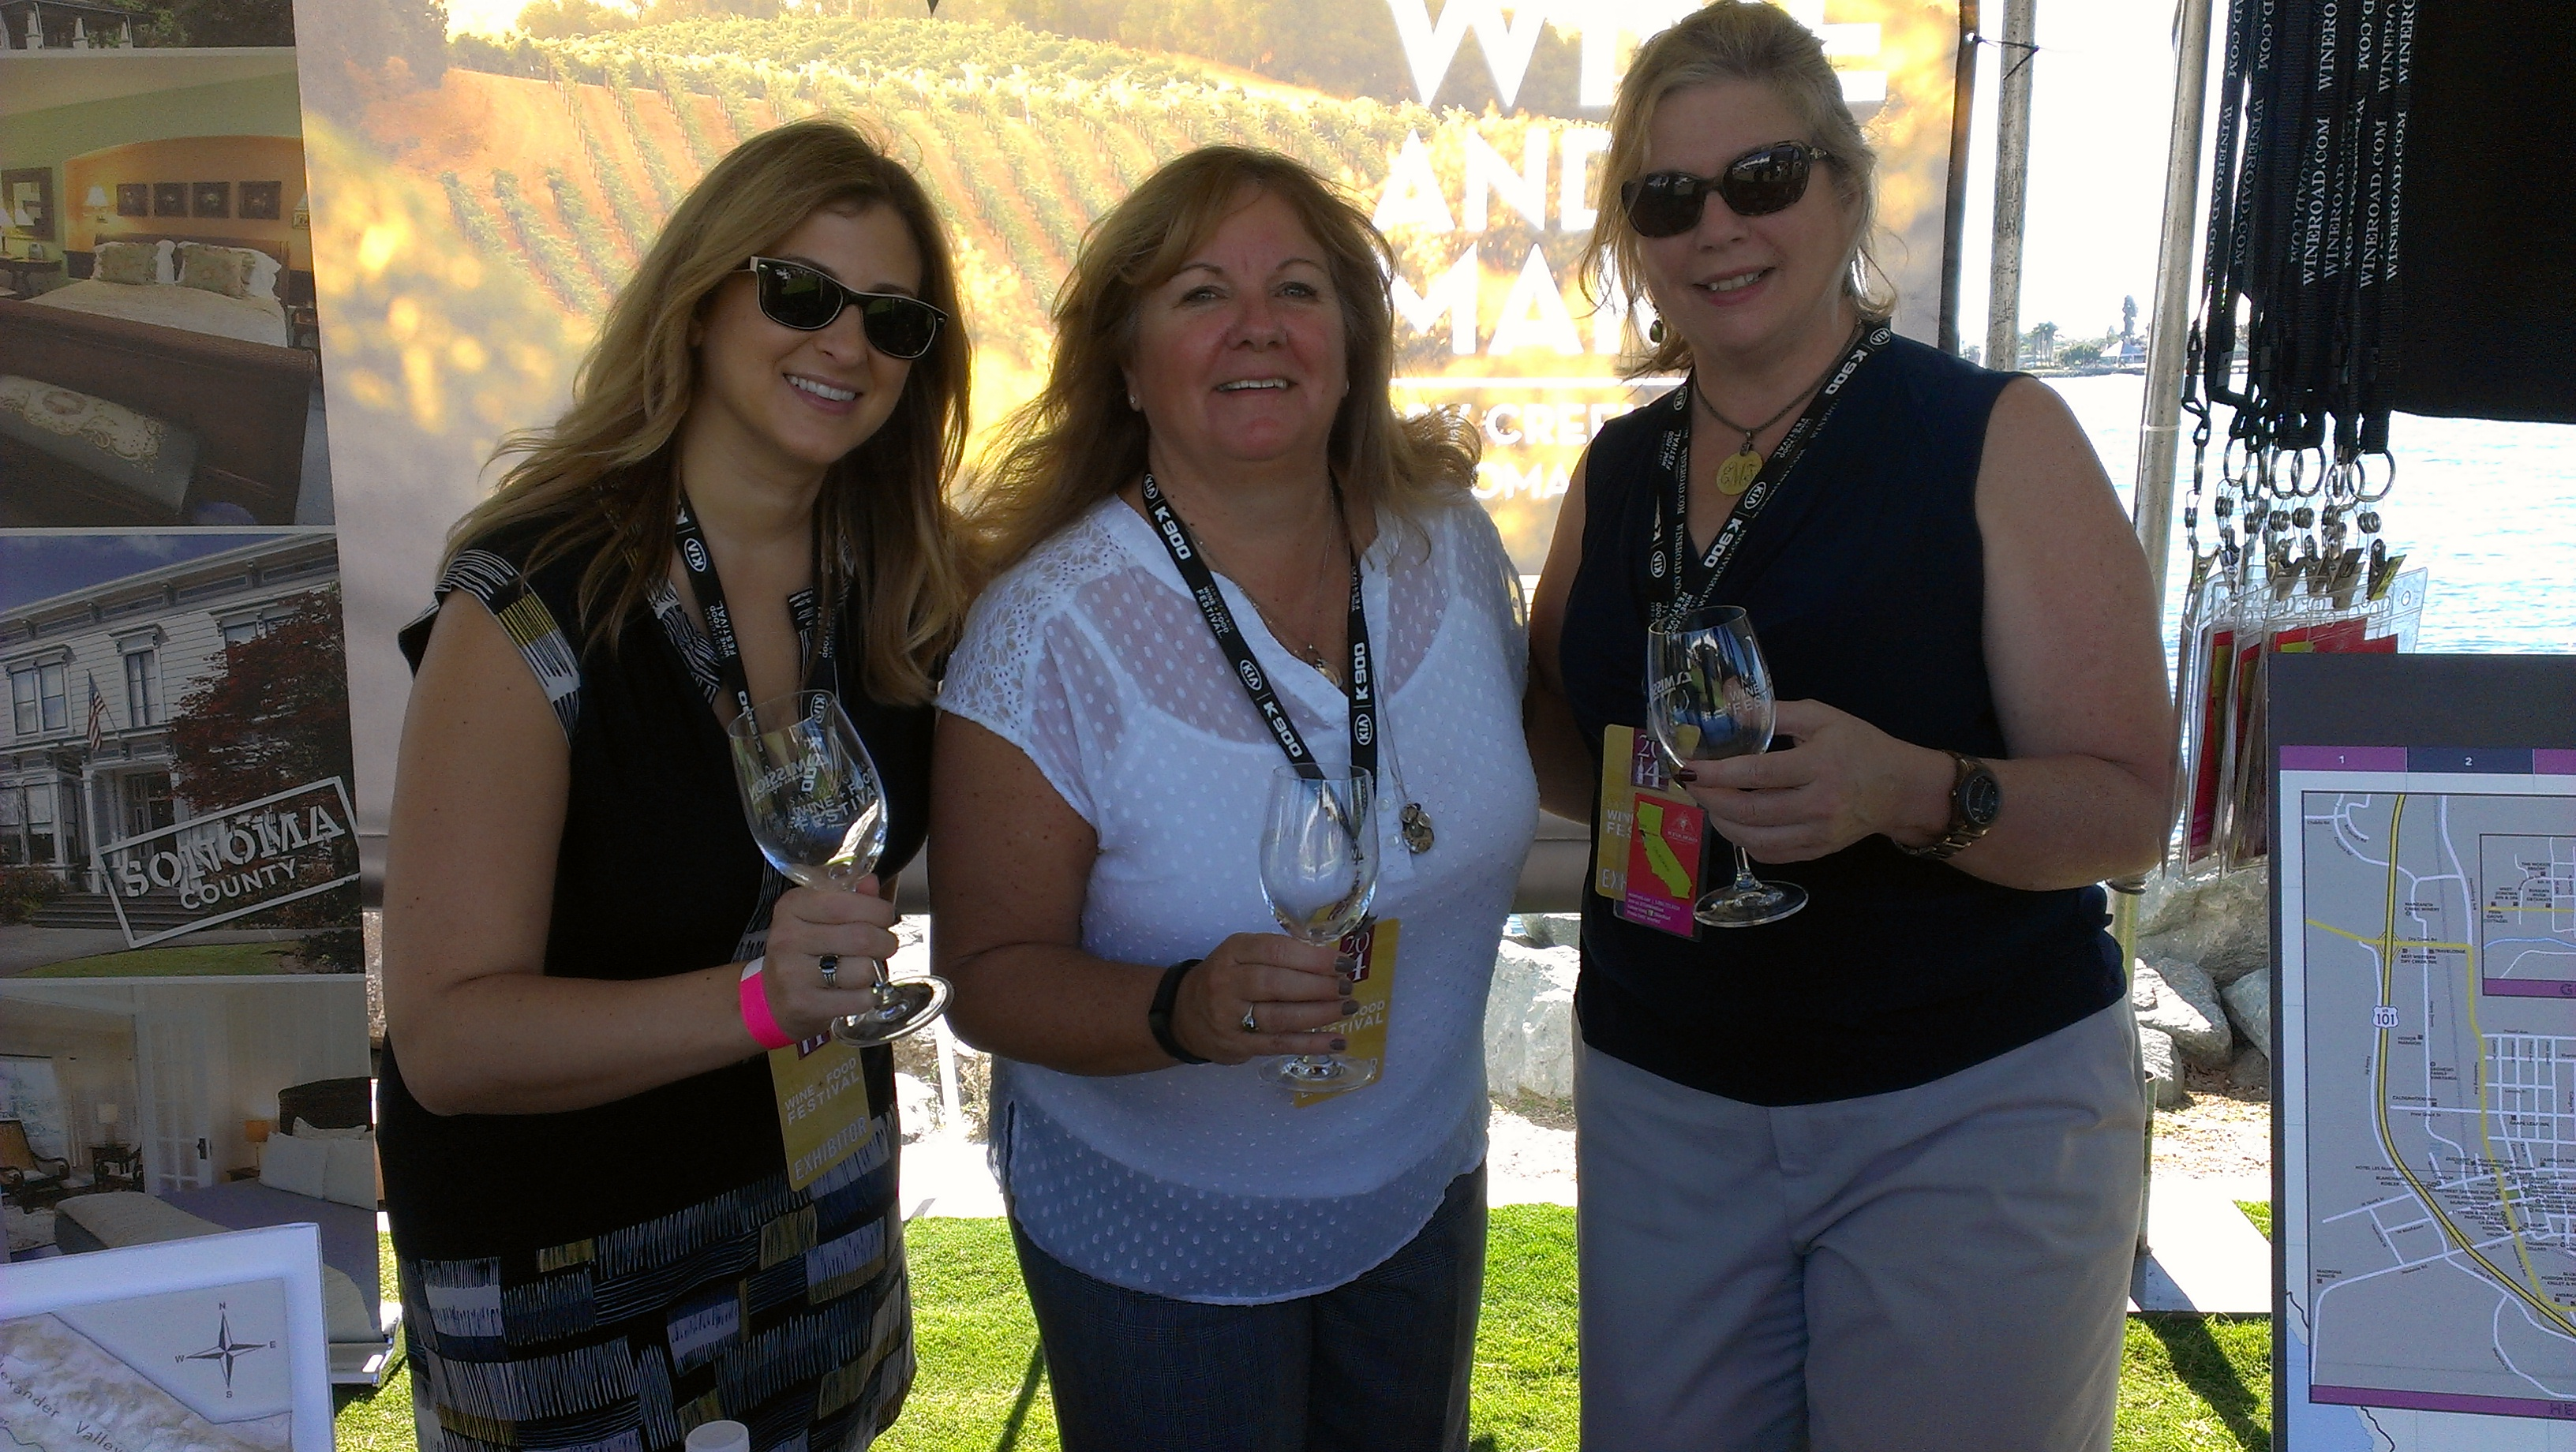 Celia Soudry, Beth Costa from The Wine Road, and Erin McCauley from the Hilton Garden Inn Sonoma Airport